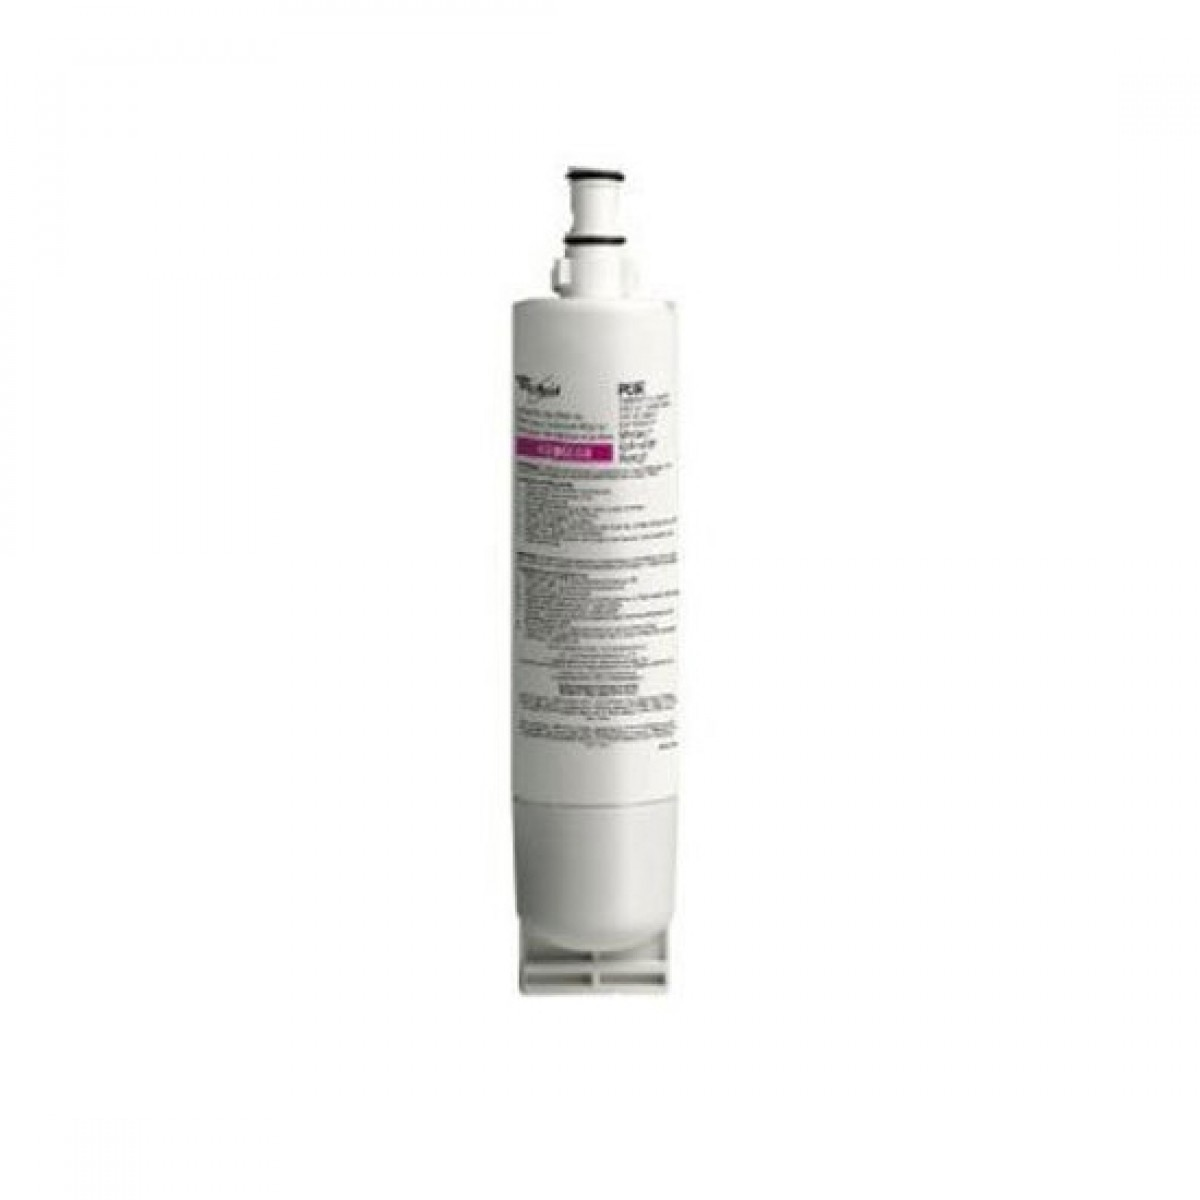 KitchenAid 4396547 Deluxe Refrigerator Water Filter Good Looking